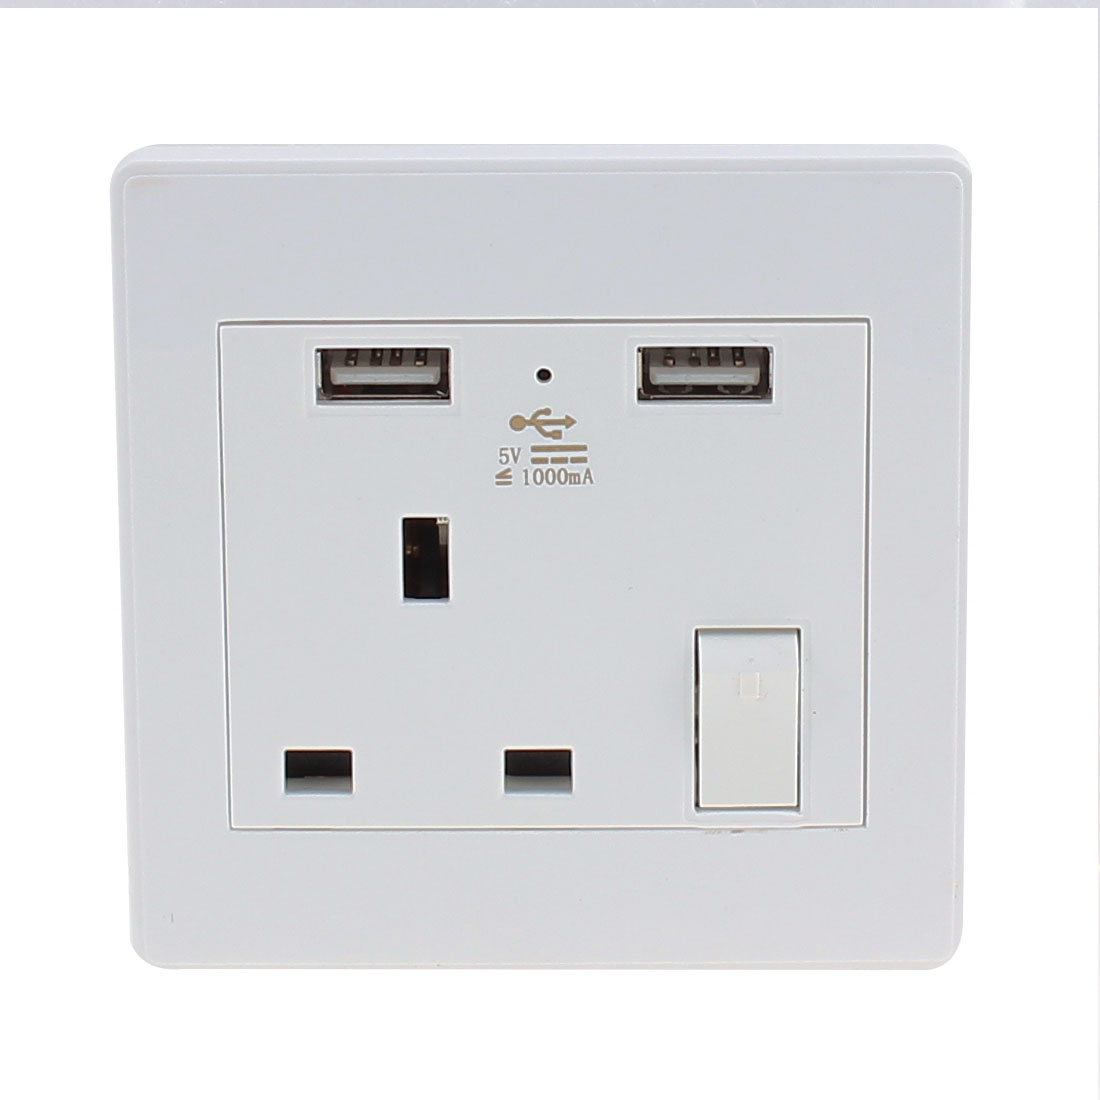 AC 110V-250V UK Socket 2 USB Port 5VDC 1000mA Charger Power LED Lamp Switch Wall Outlet